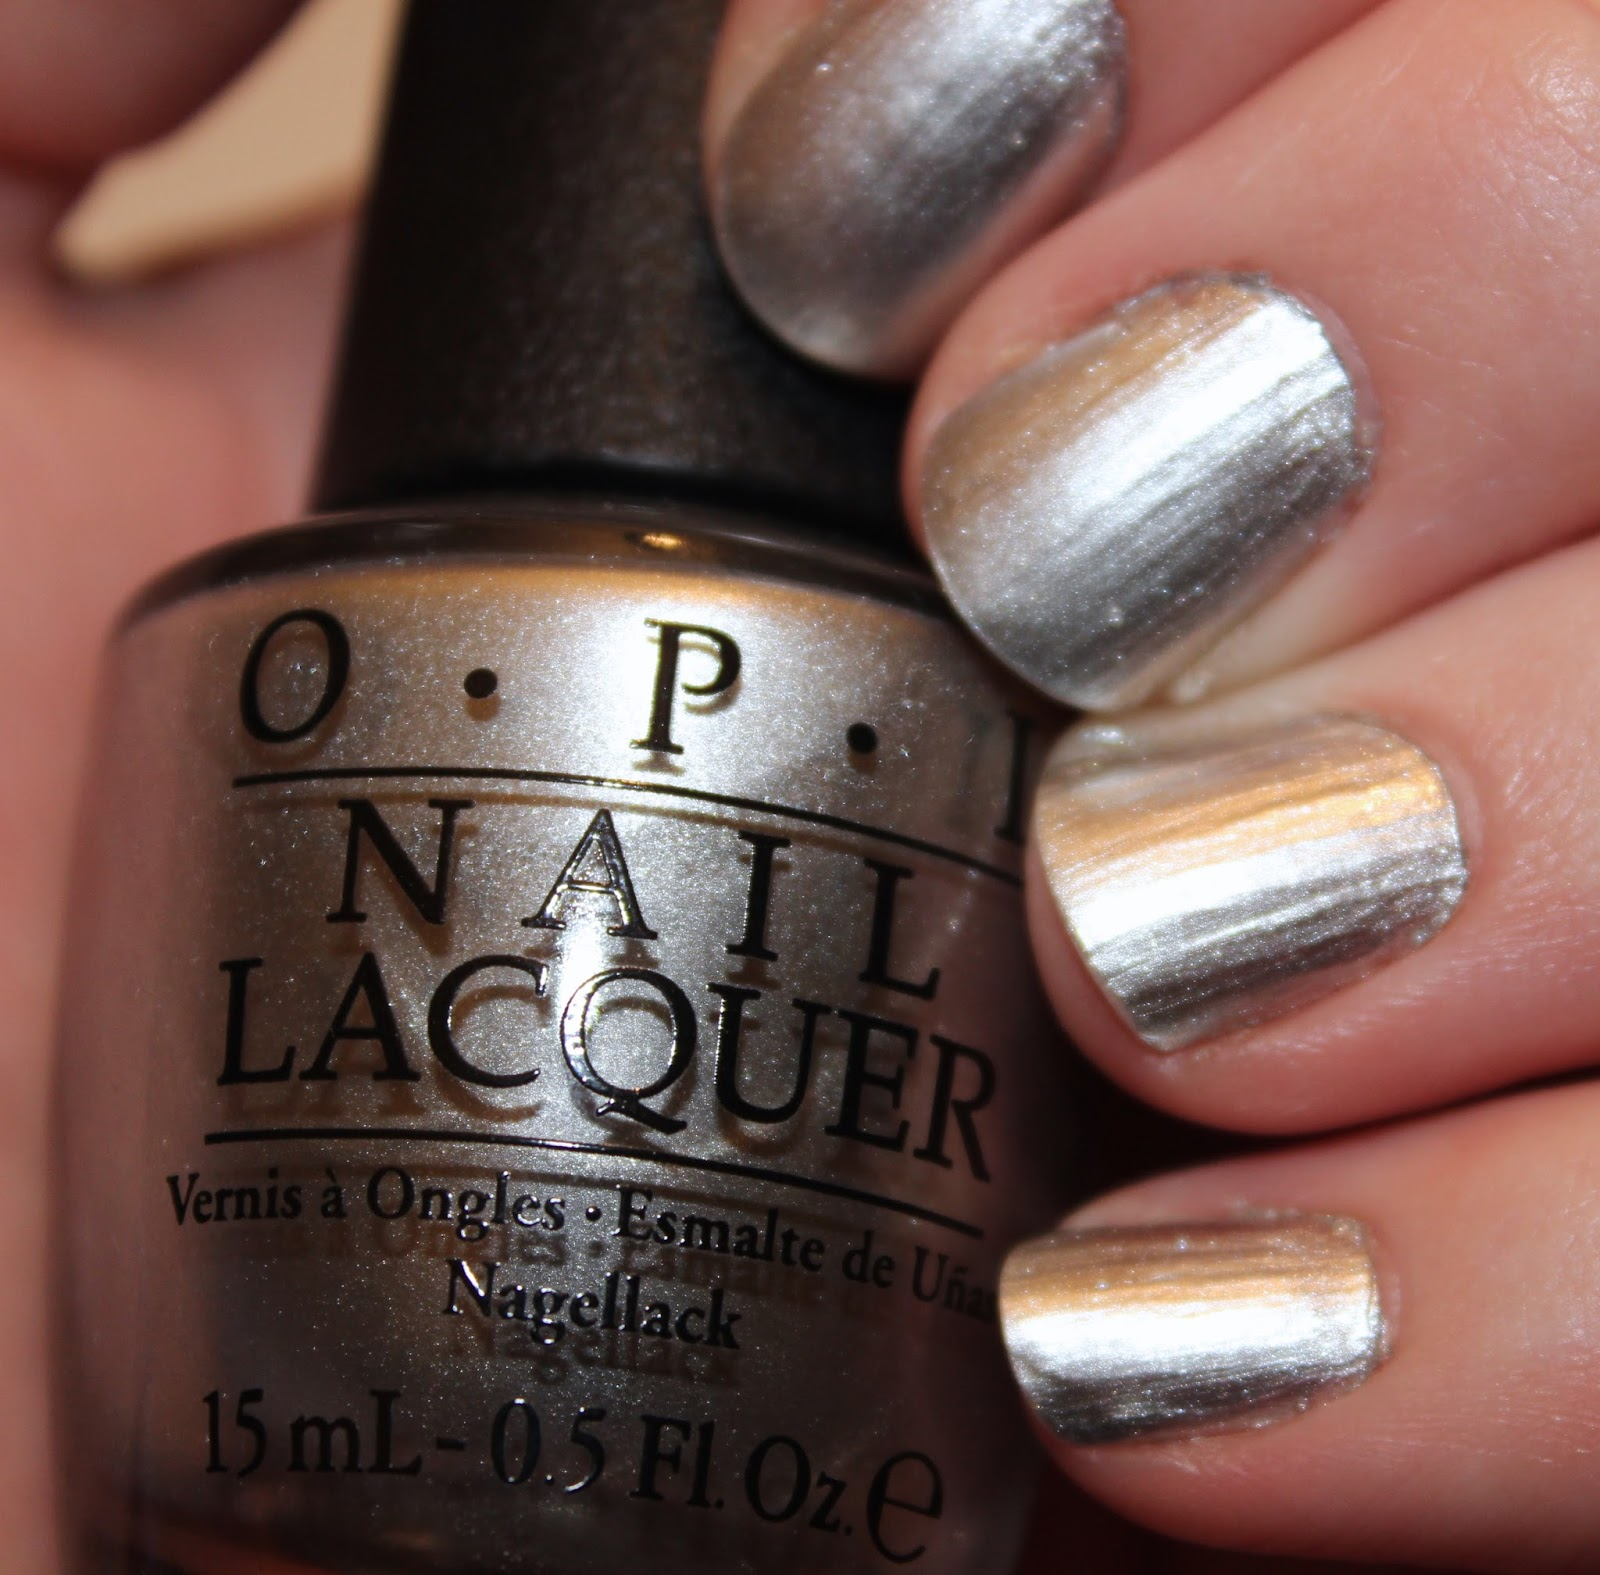 Luxury on the Lips: Nailed It - OPI Nail Lacquer in My Silk Tie